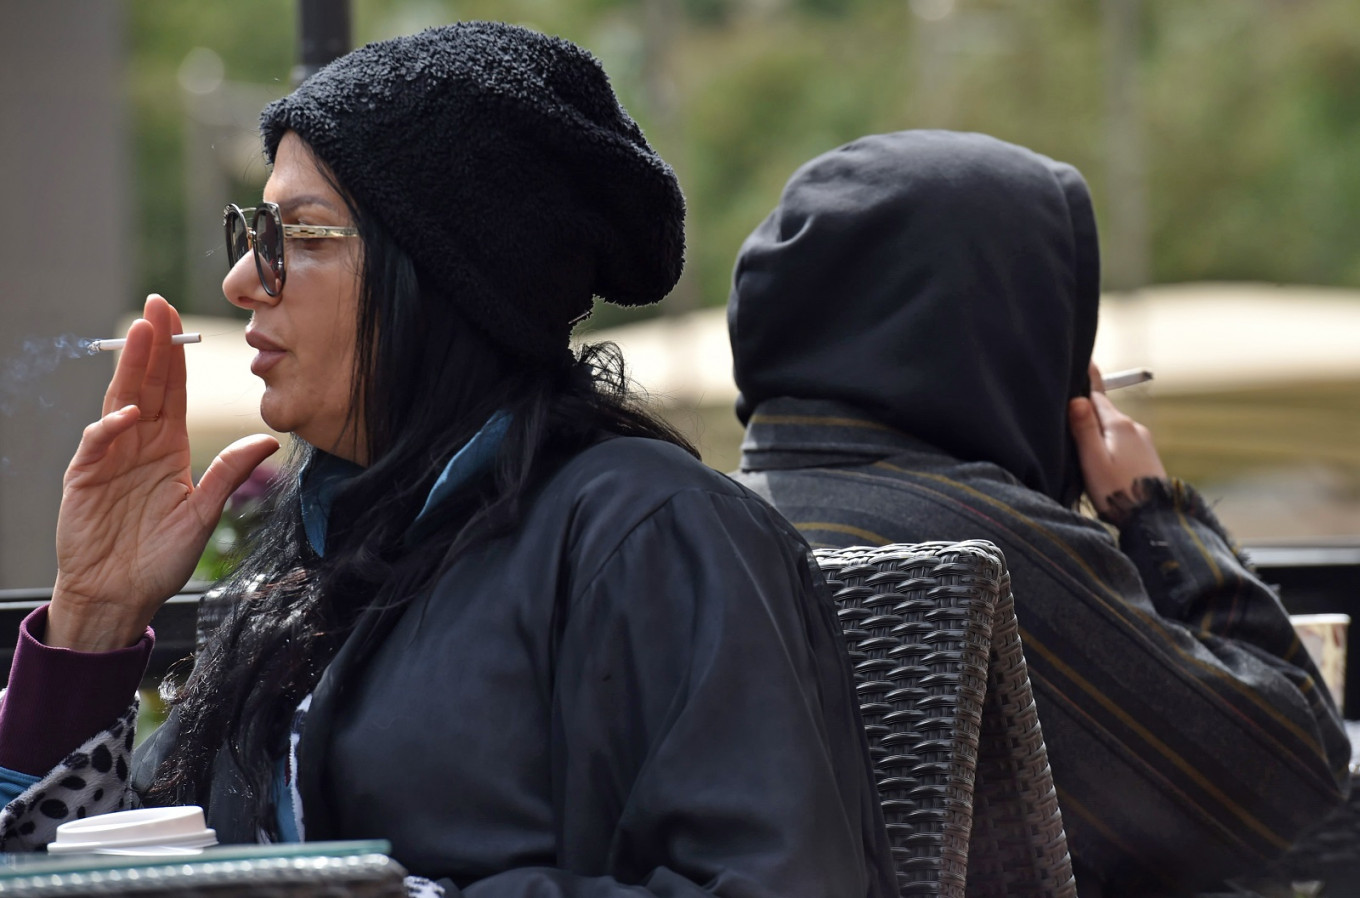 Saudi women smoke in public to 'complete' their freedom